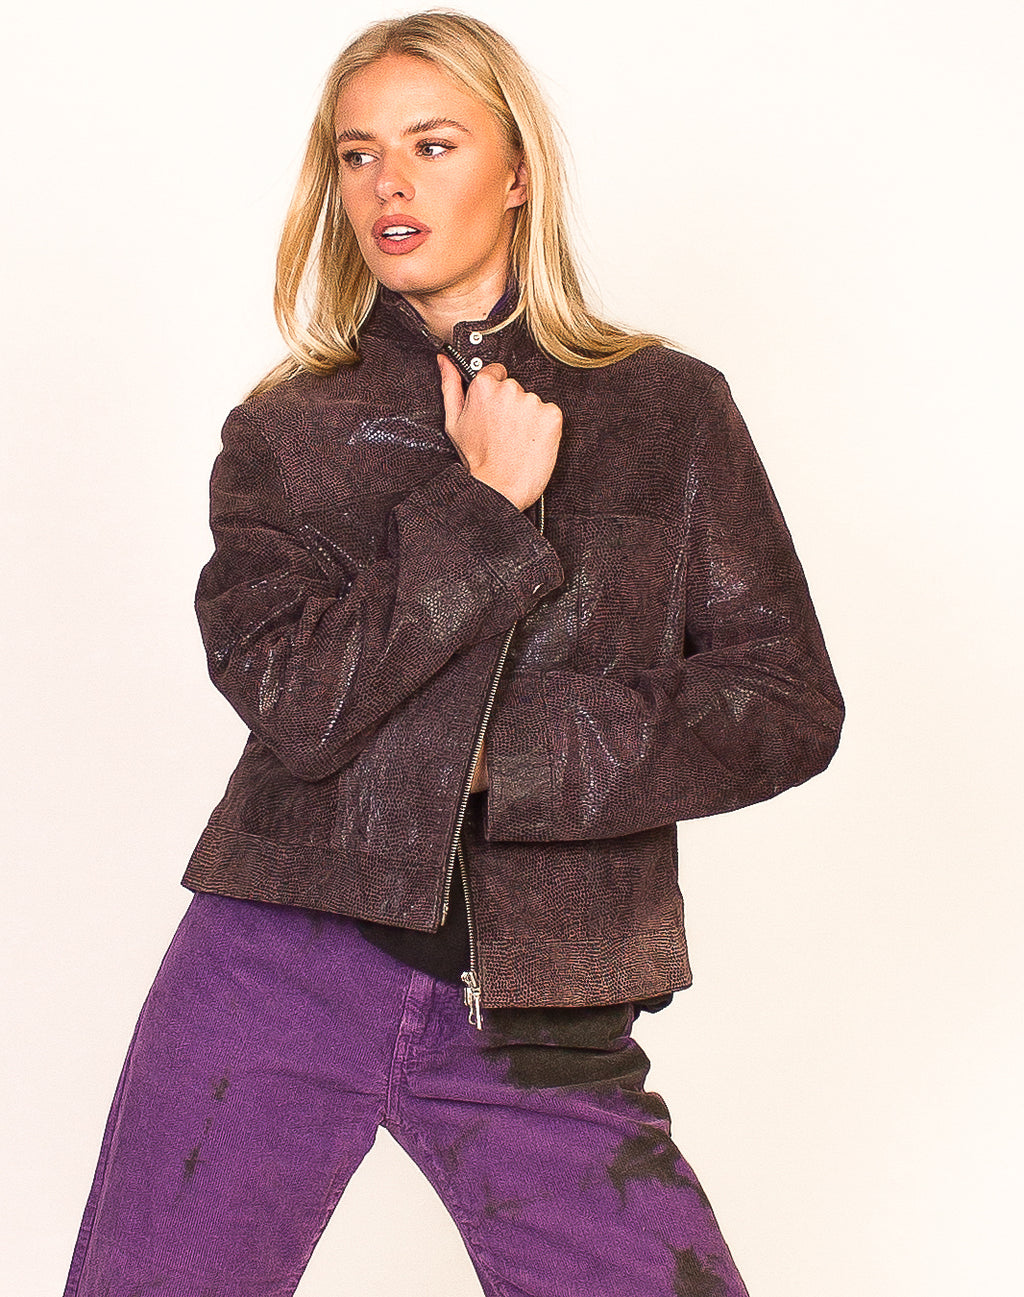 PURPLE SNAKESKIN Y2K BIKER JACKET